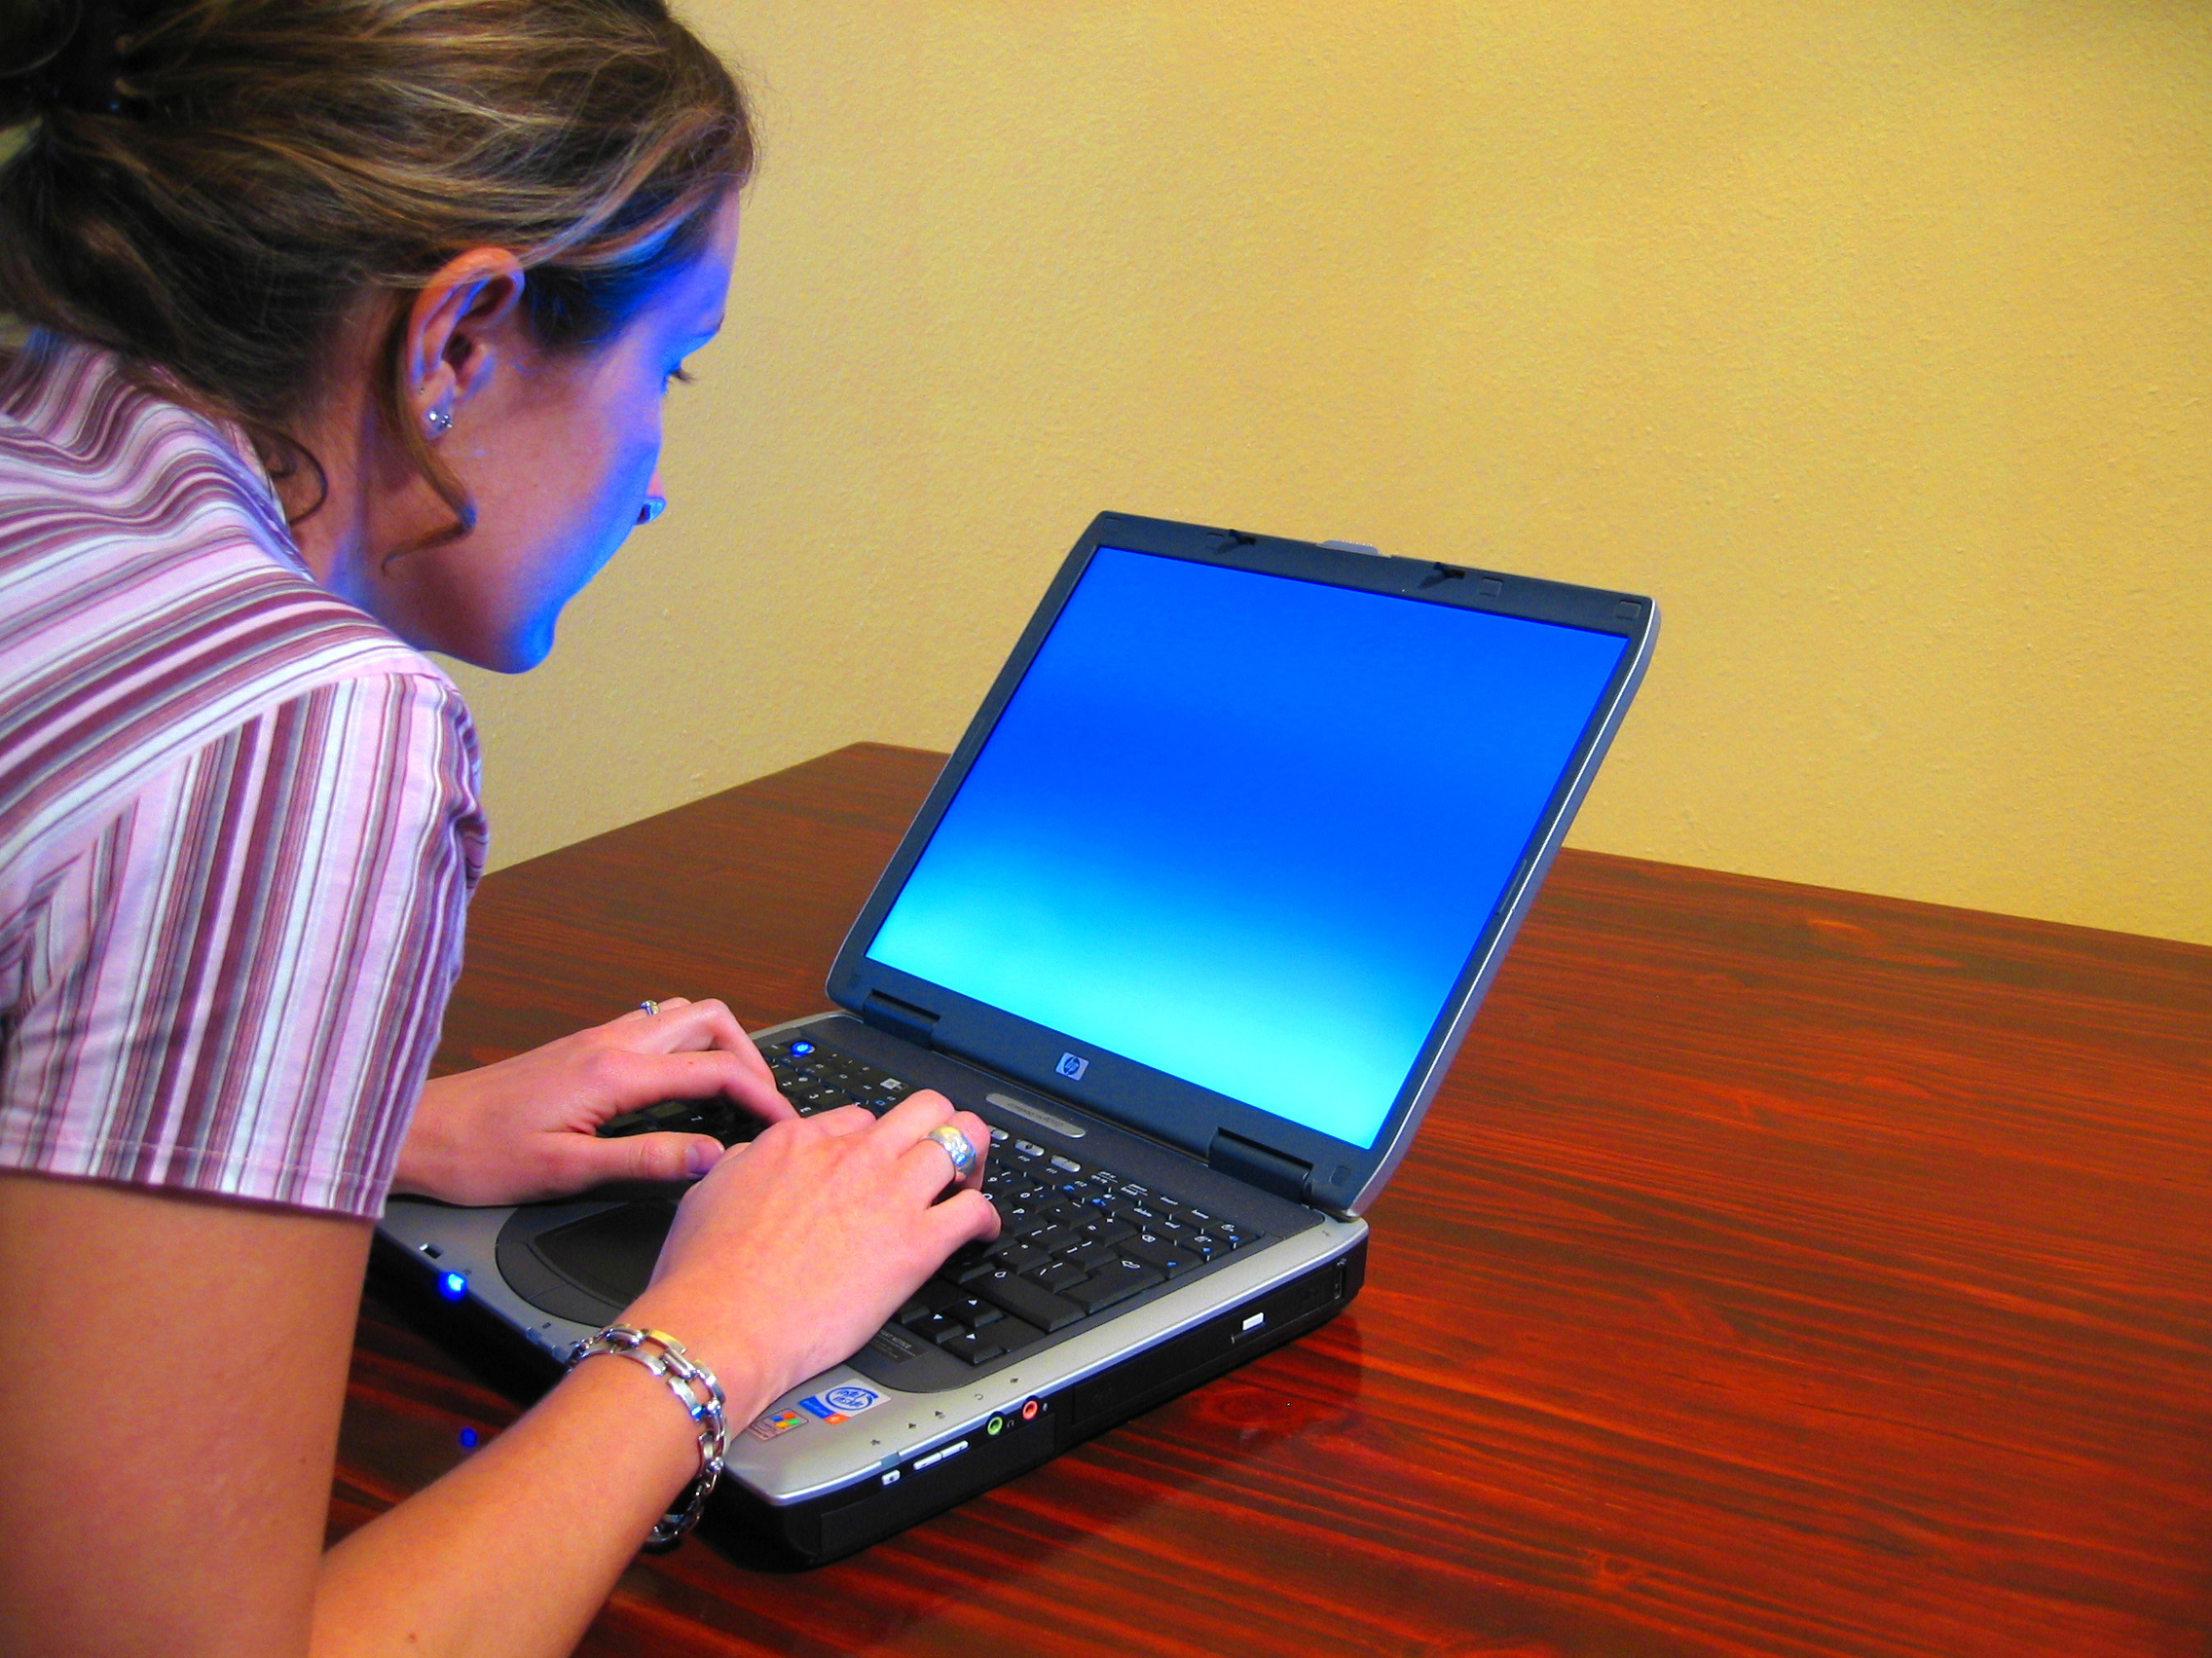 How to Choose the Best Laptops for College Students